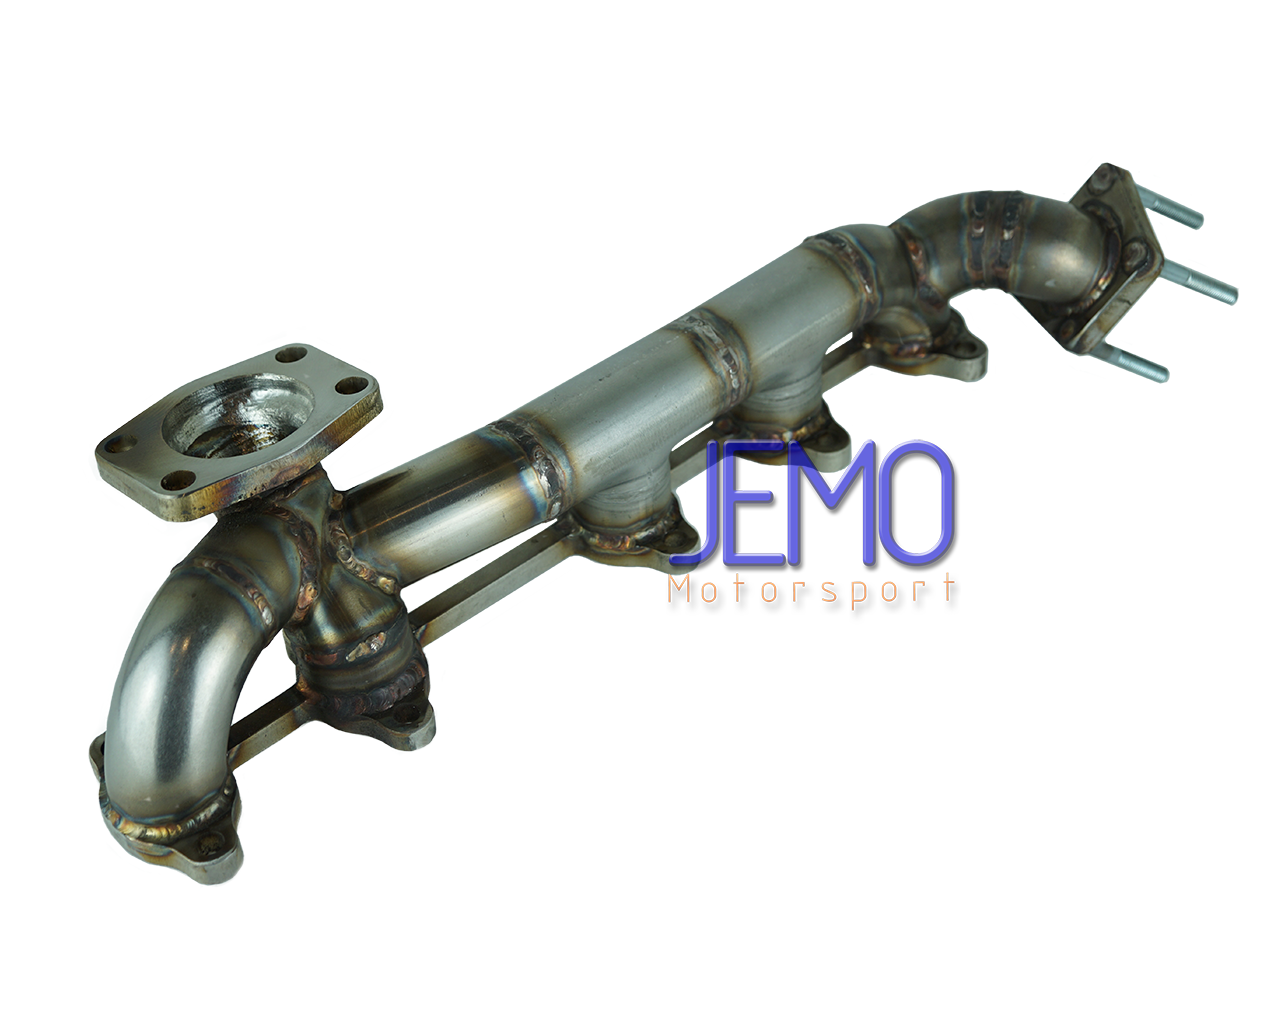 OEM turbo exhaust manifold Audi 10V Turbo